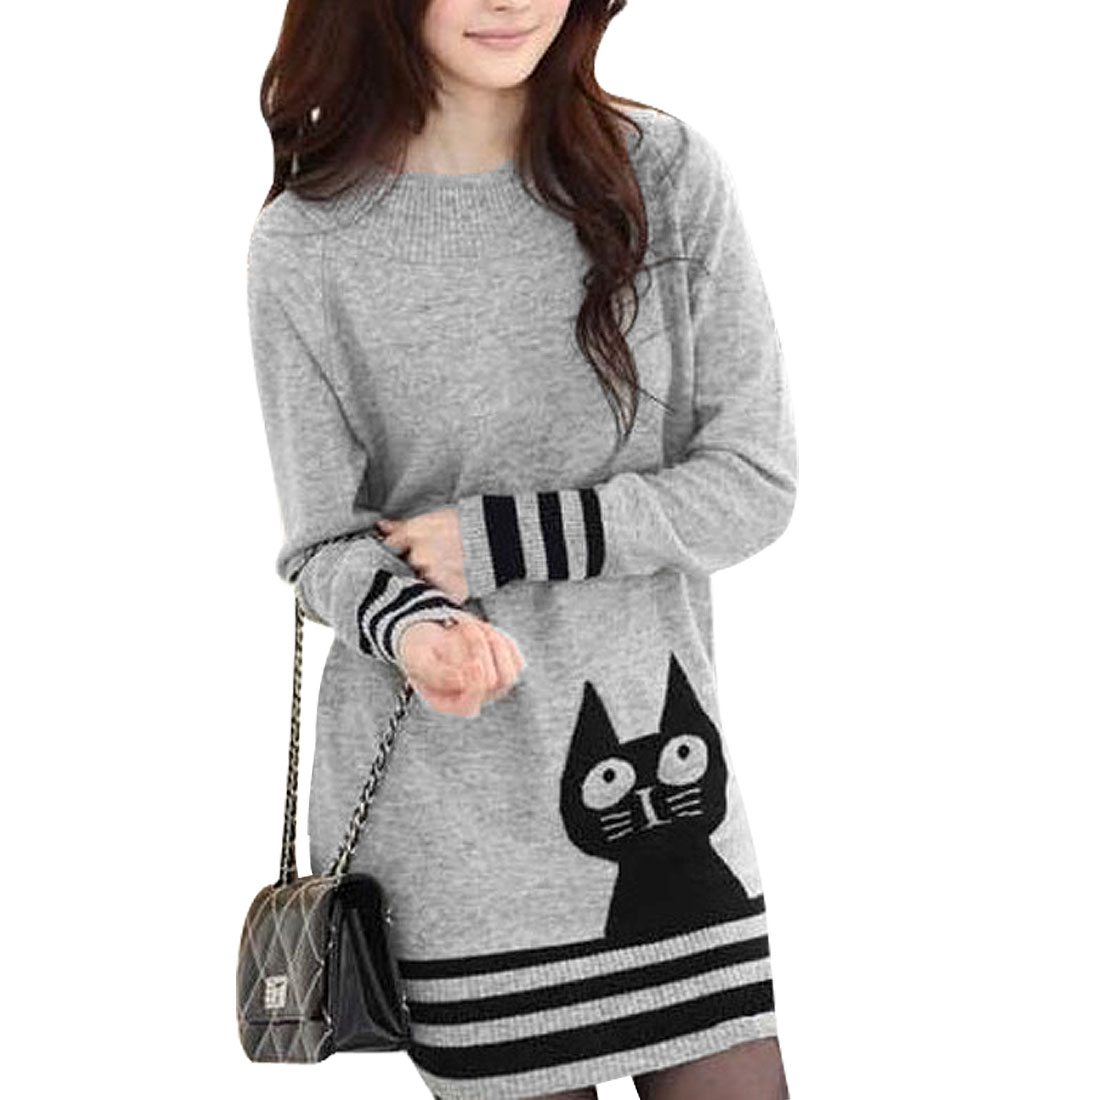 Ladies Light Gray Long Raglan Sleeve Knitted Tunic Sweater XS